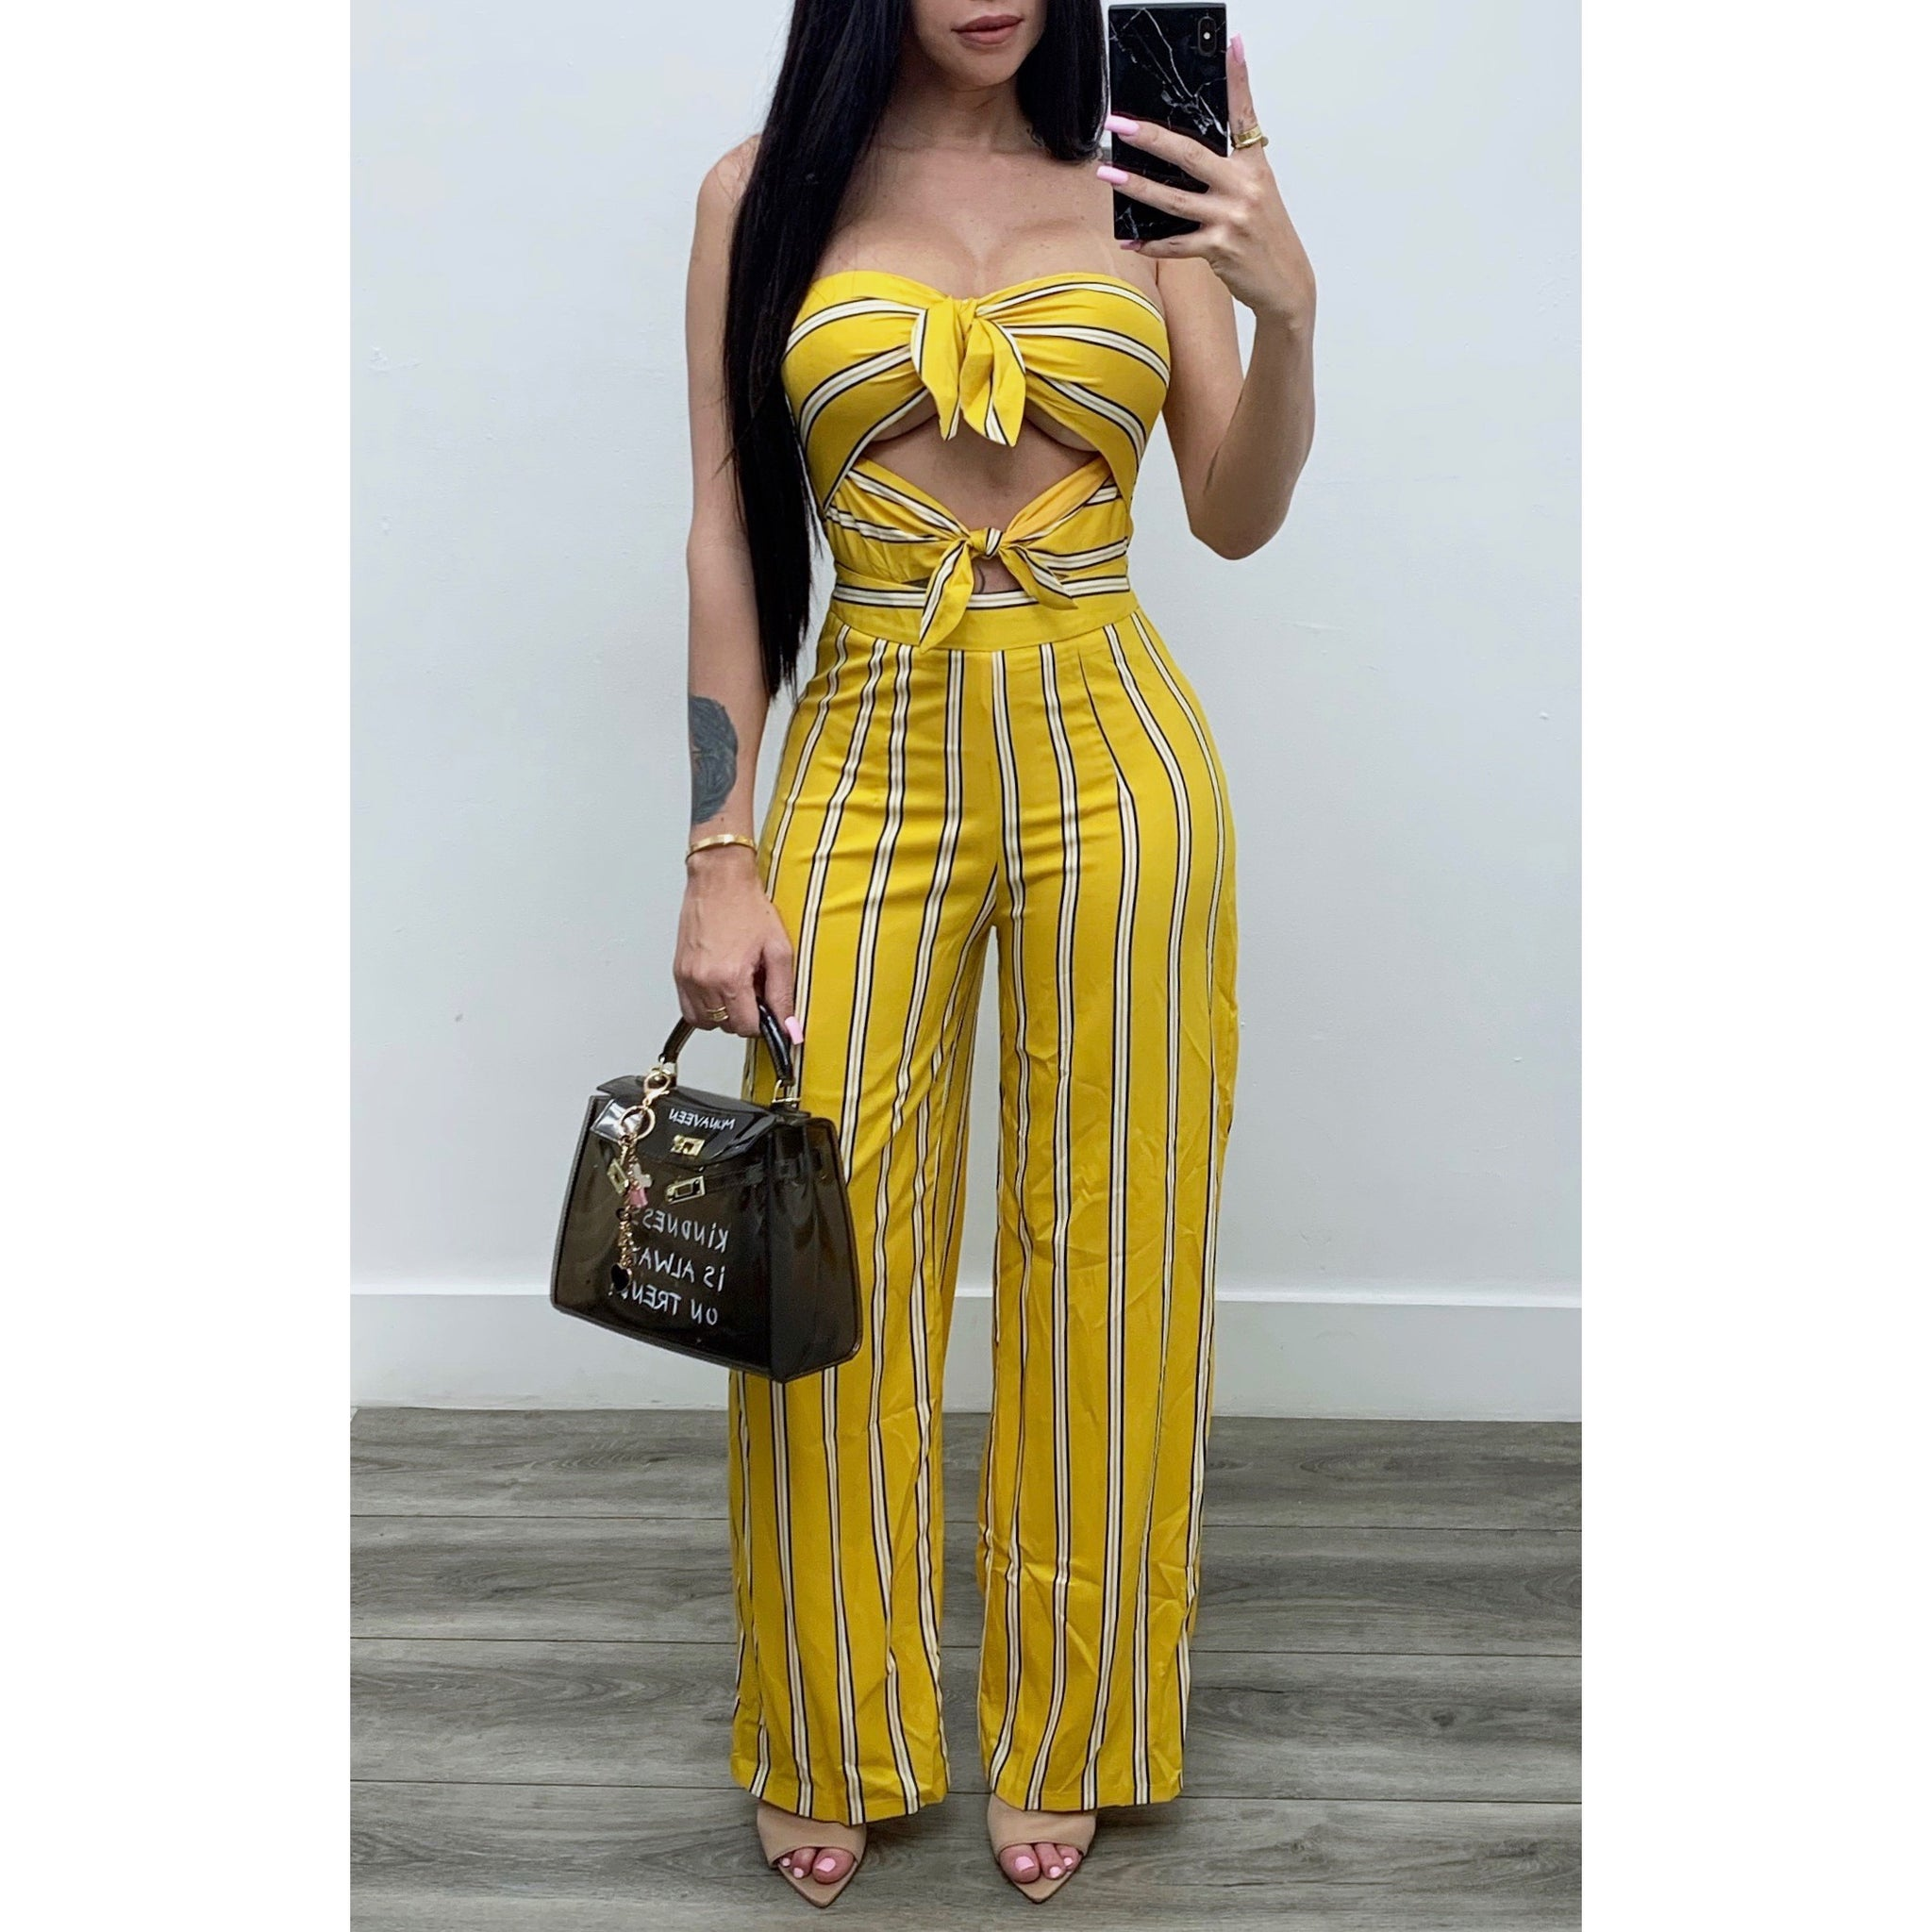 Celine Stripes Jumpsuit